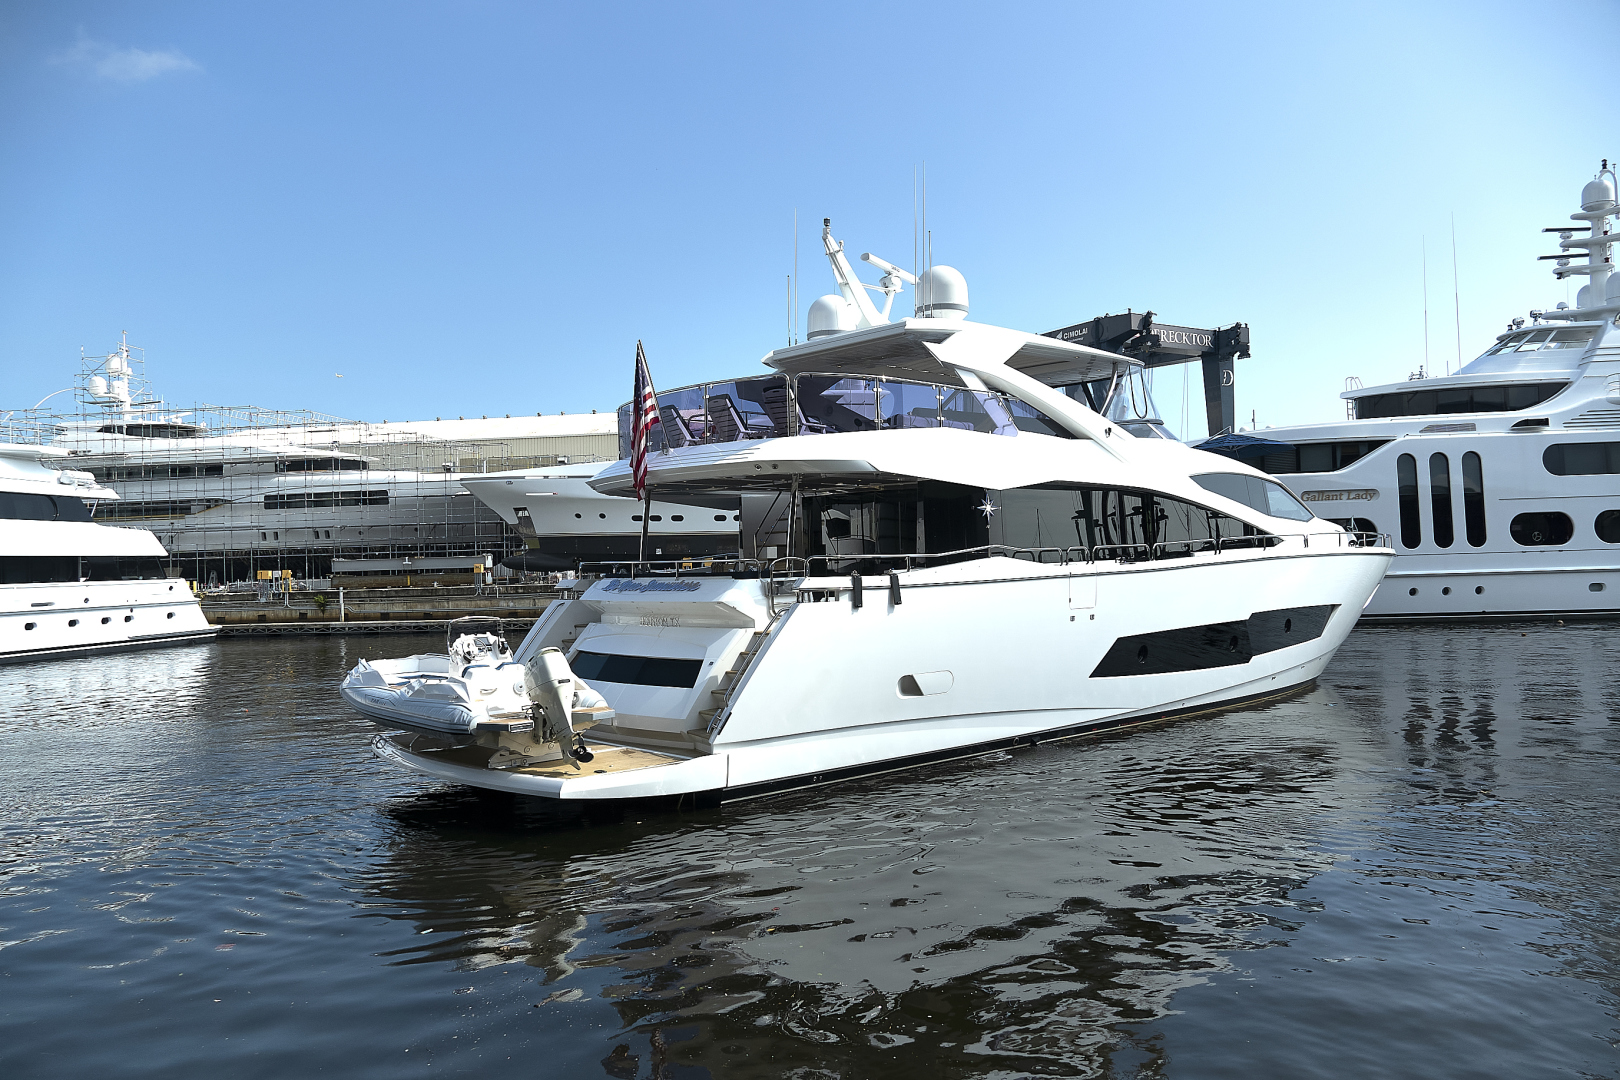 Sunseeker-86 Yacht 2019-Its Noon Somewhere Fort Lauderdale-Florida-United States-1556648 | Thumbnail